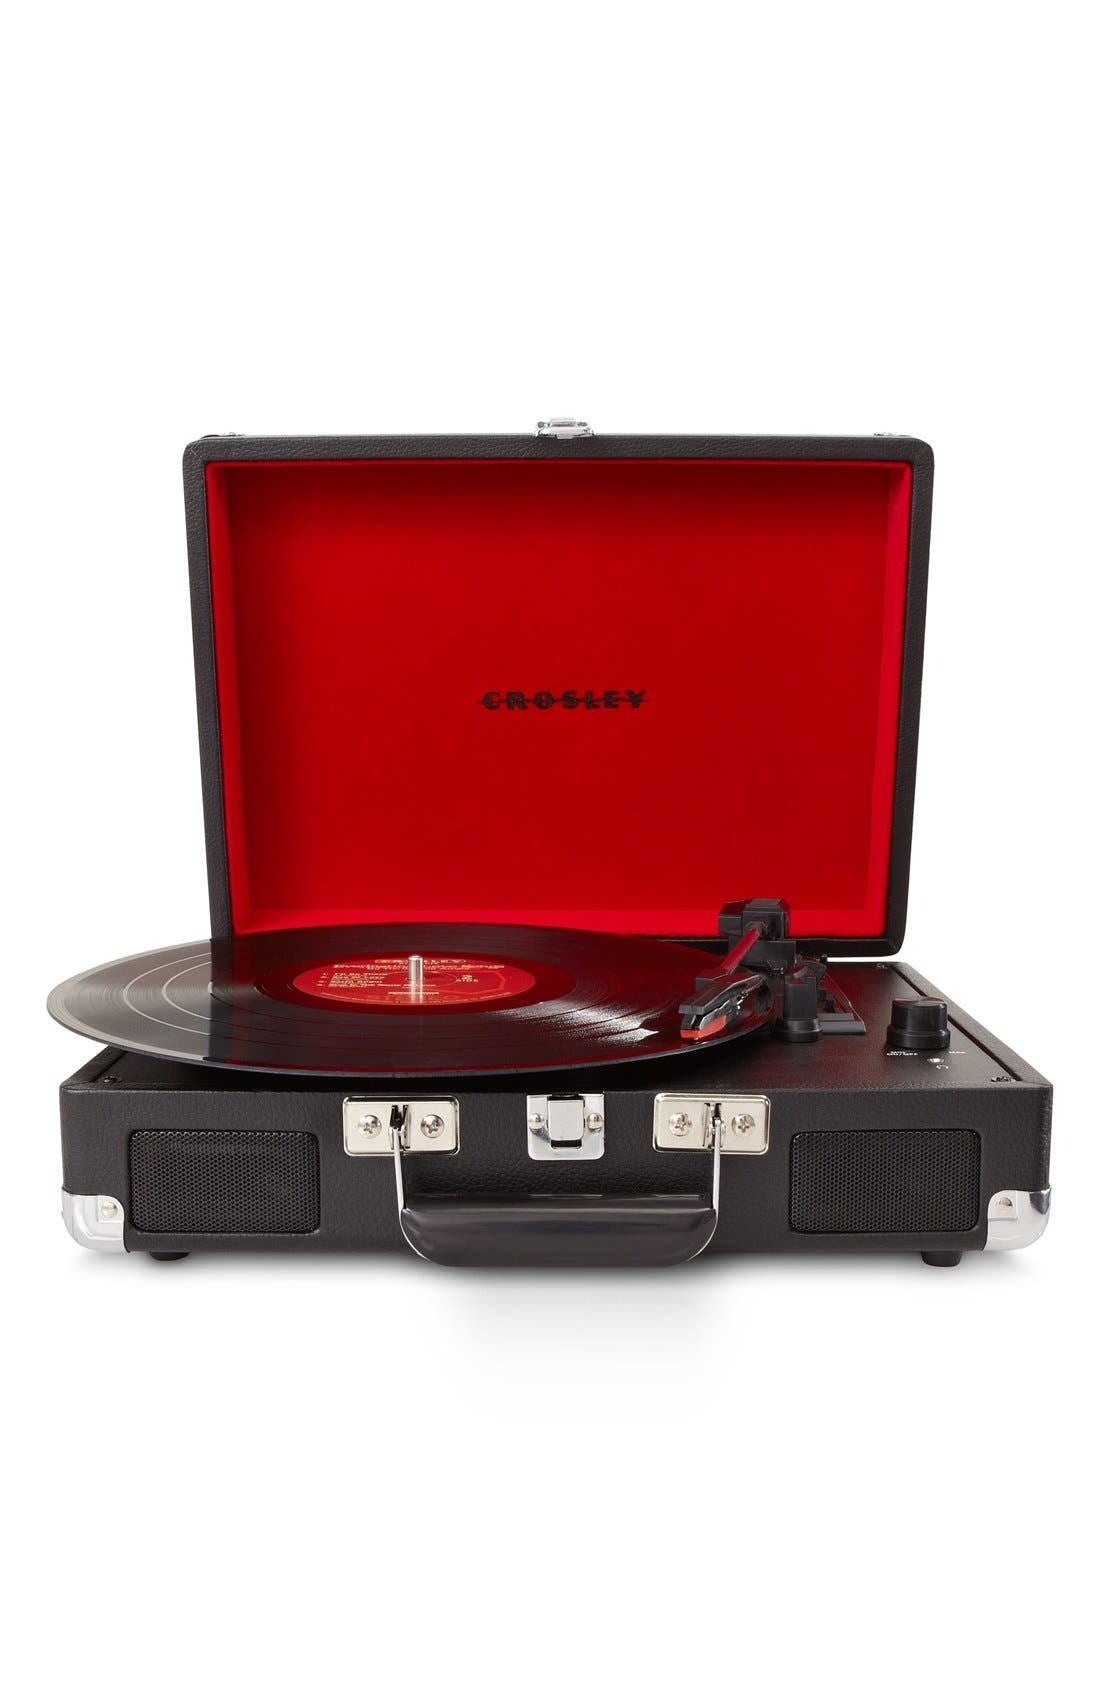 Alternate Image 1 Selected - Crosley Radio 'Cruiser' Turntable